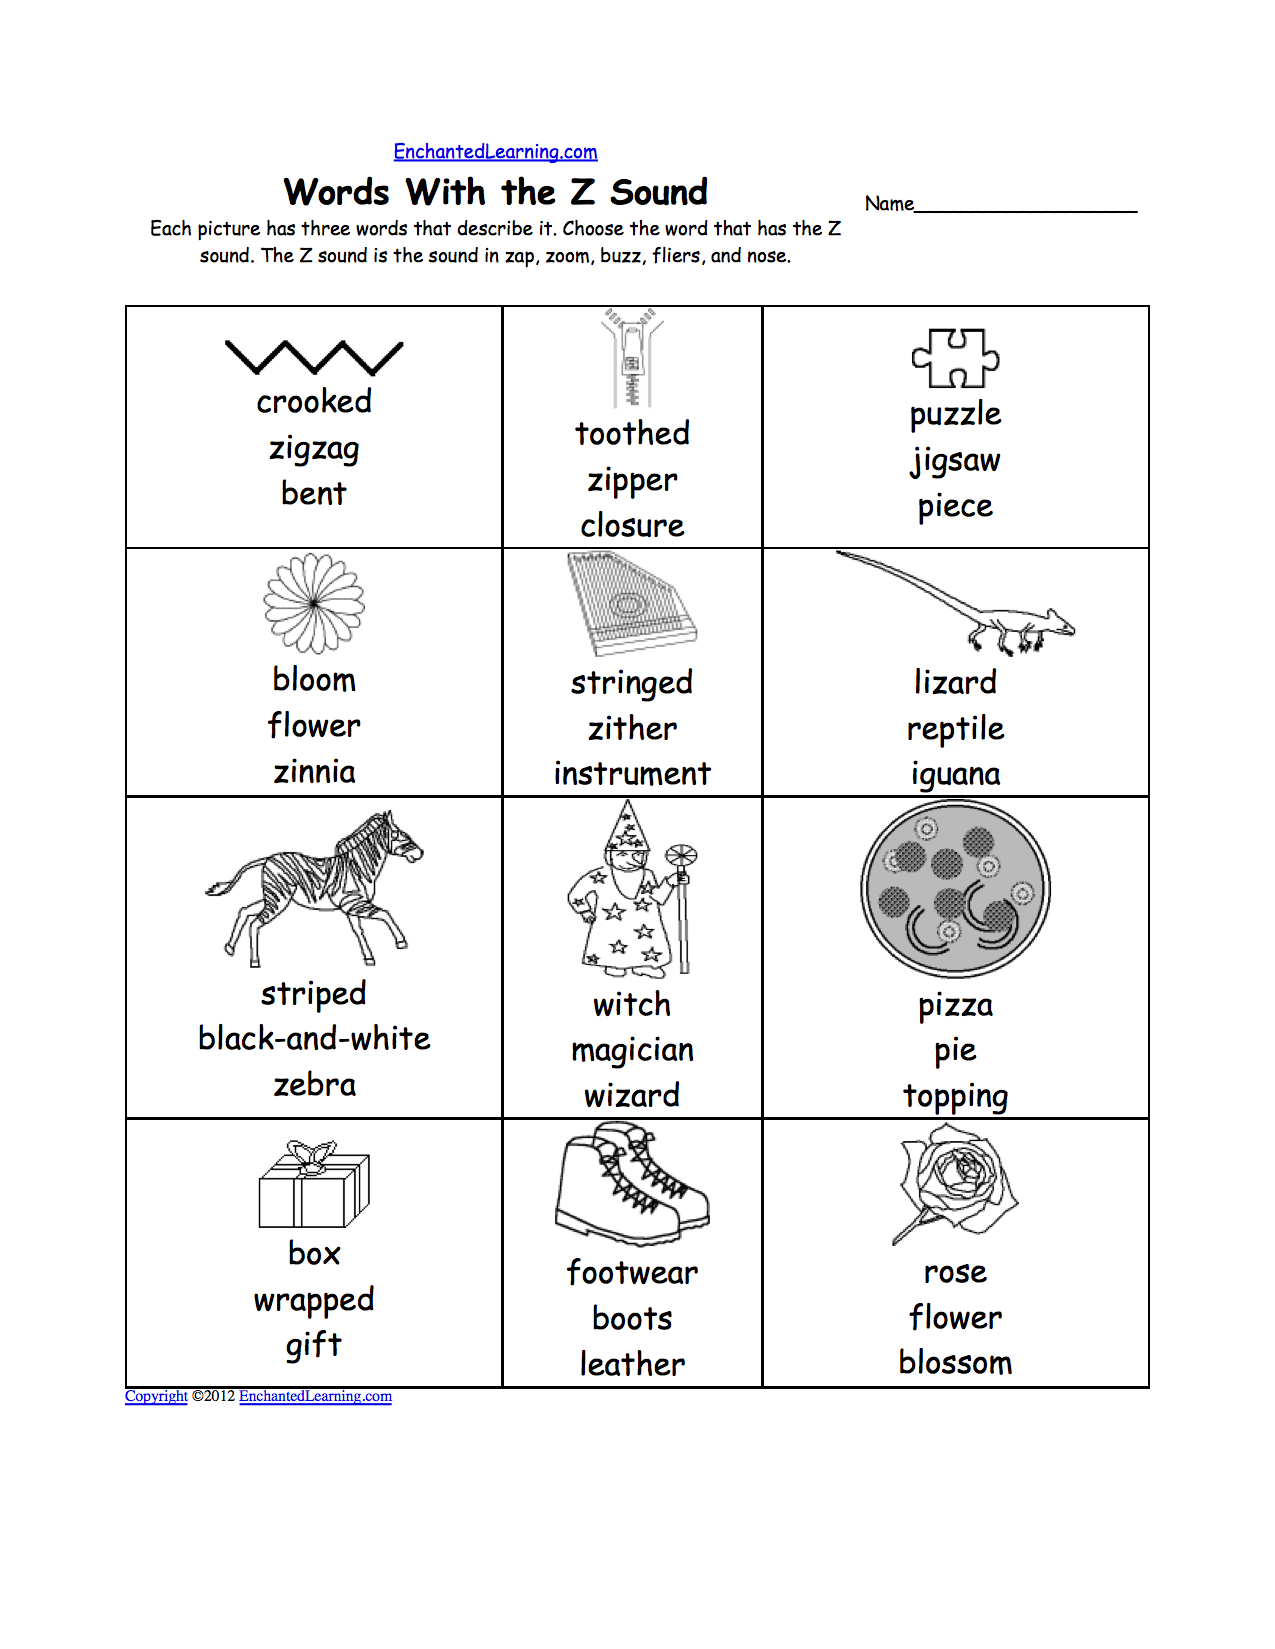 Weirdmailus  Splendid Phonics Worksheets Multiple Choice Worksheets To Print  With Heavenly Phonics Worksheets Multiple Choice Worksheets To Print  Enchantedlearningcom With Amusing Numeracy  Worksheets Also Year  Maths Worksheets To Print In Addition Fourth Grade Reading Comprehension Worksheets And Home Office Deduction Worksheet As Well As Factoring Algebraic Expressions Worksheet Additionally Mortgage Worksheet From Enchantedlearningcom With Weirdmailus  Heavenly Phonics Worksheets Multiple Choice Worksheets To Print  With Amusing Phonics Worksheets Multiple Choice Worksheets To Print  Enchantedlearningcom And Splendid Numeracy  Worksheets Also Year  Maths Worksheets To Print In Addition Fourth Grade Reading Comprehension Worksheets From Enchantedlearningcom